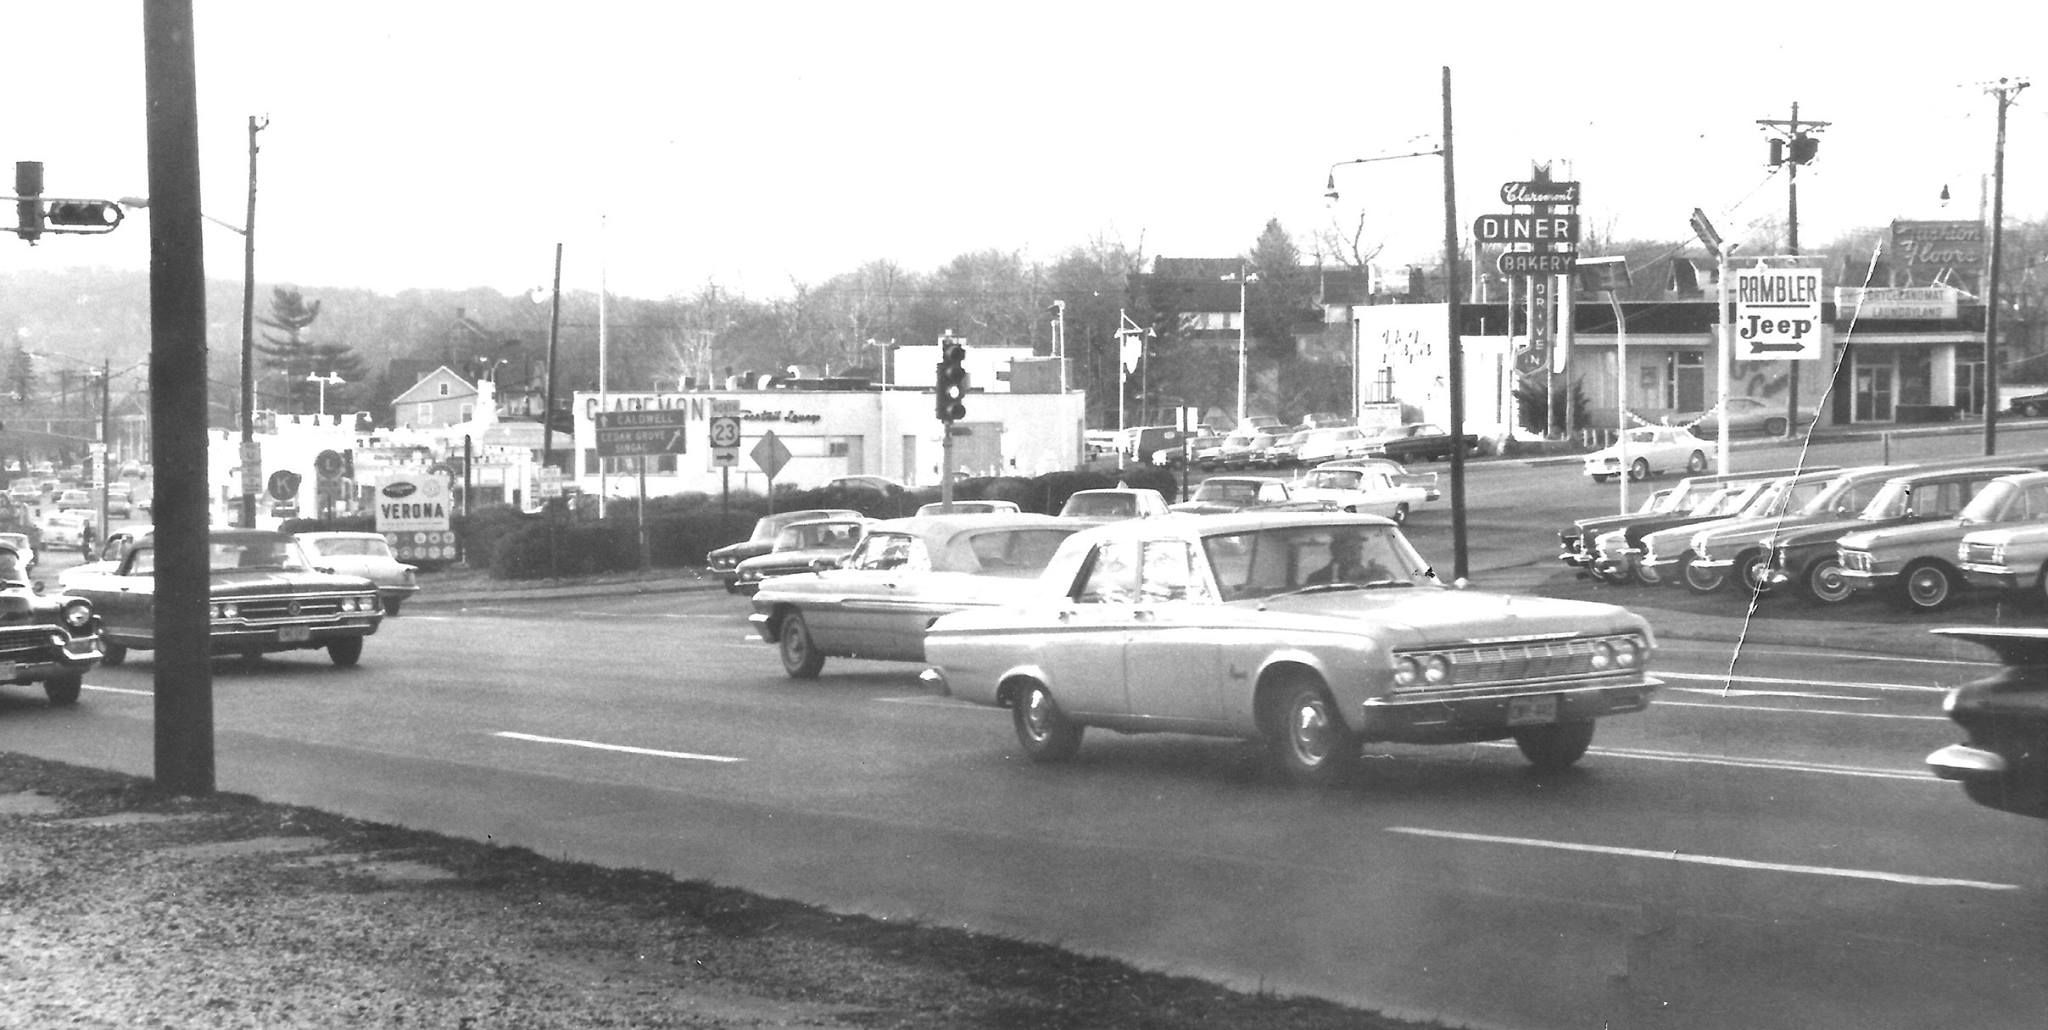 Bloomfield ave and route 23 in verona nj 1965 photo courtesy of bloomfield ave and route 23 in verona nj 1965 photo courtesy of james lee carr publicscrutiny Gallery